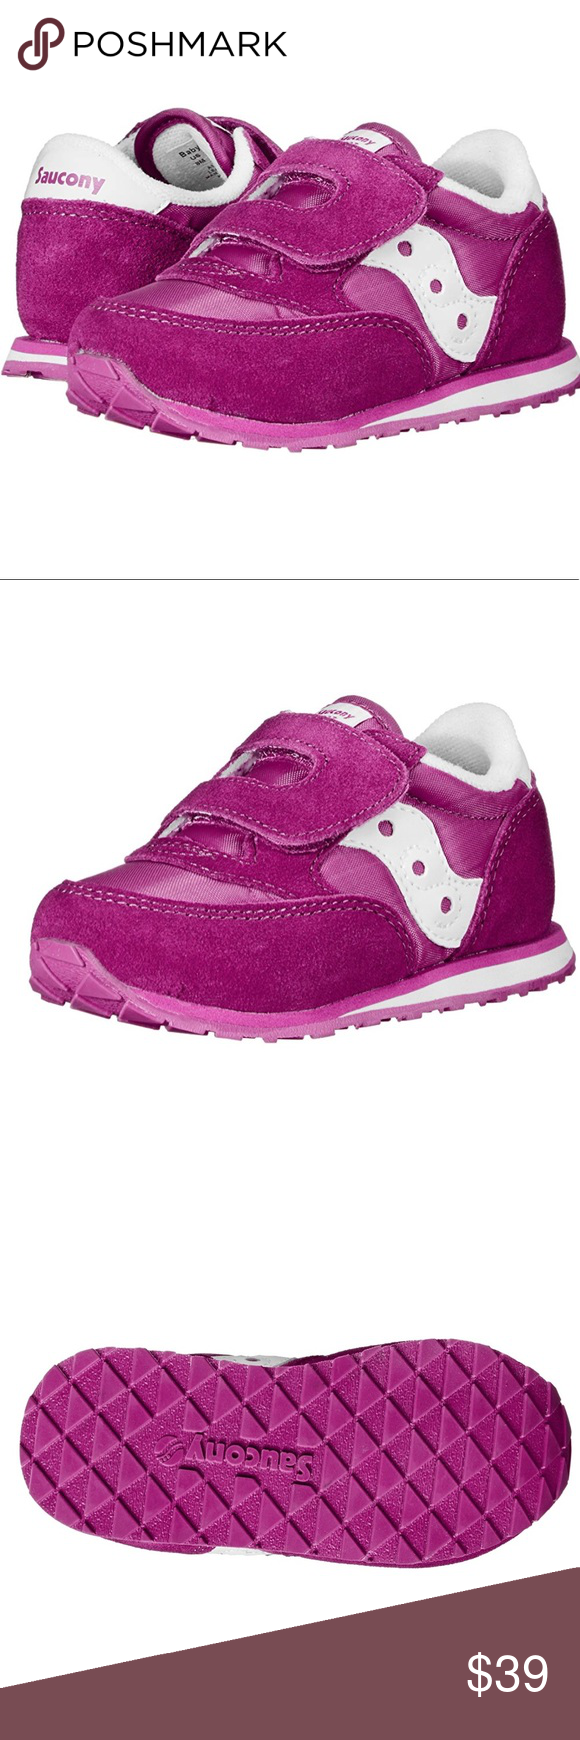 Saucony Toddler Girls Velcro Closure Sneakers The Saucony